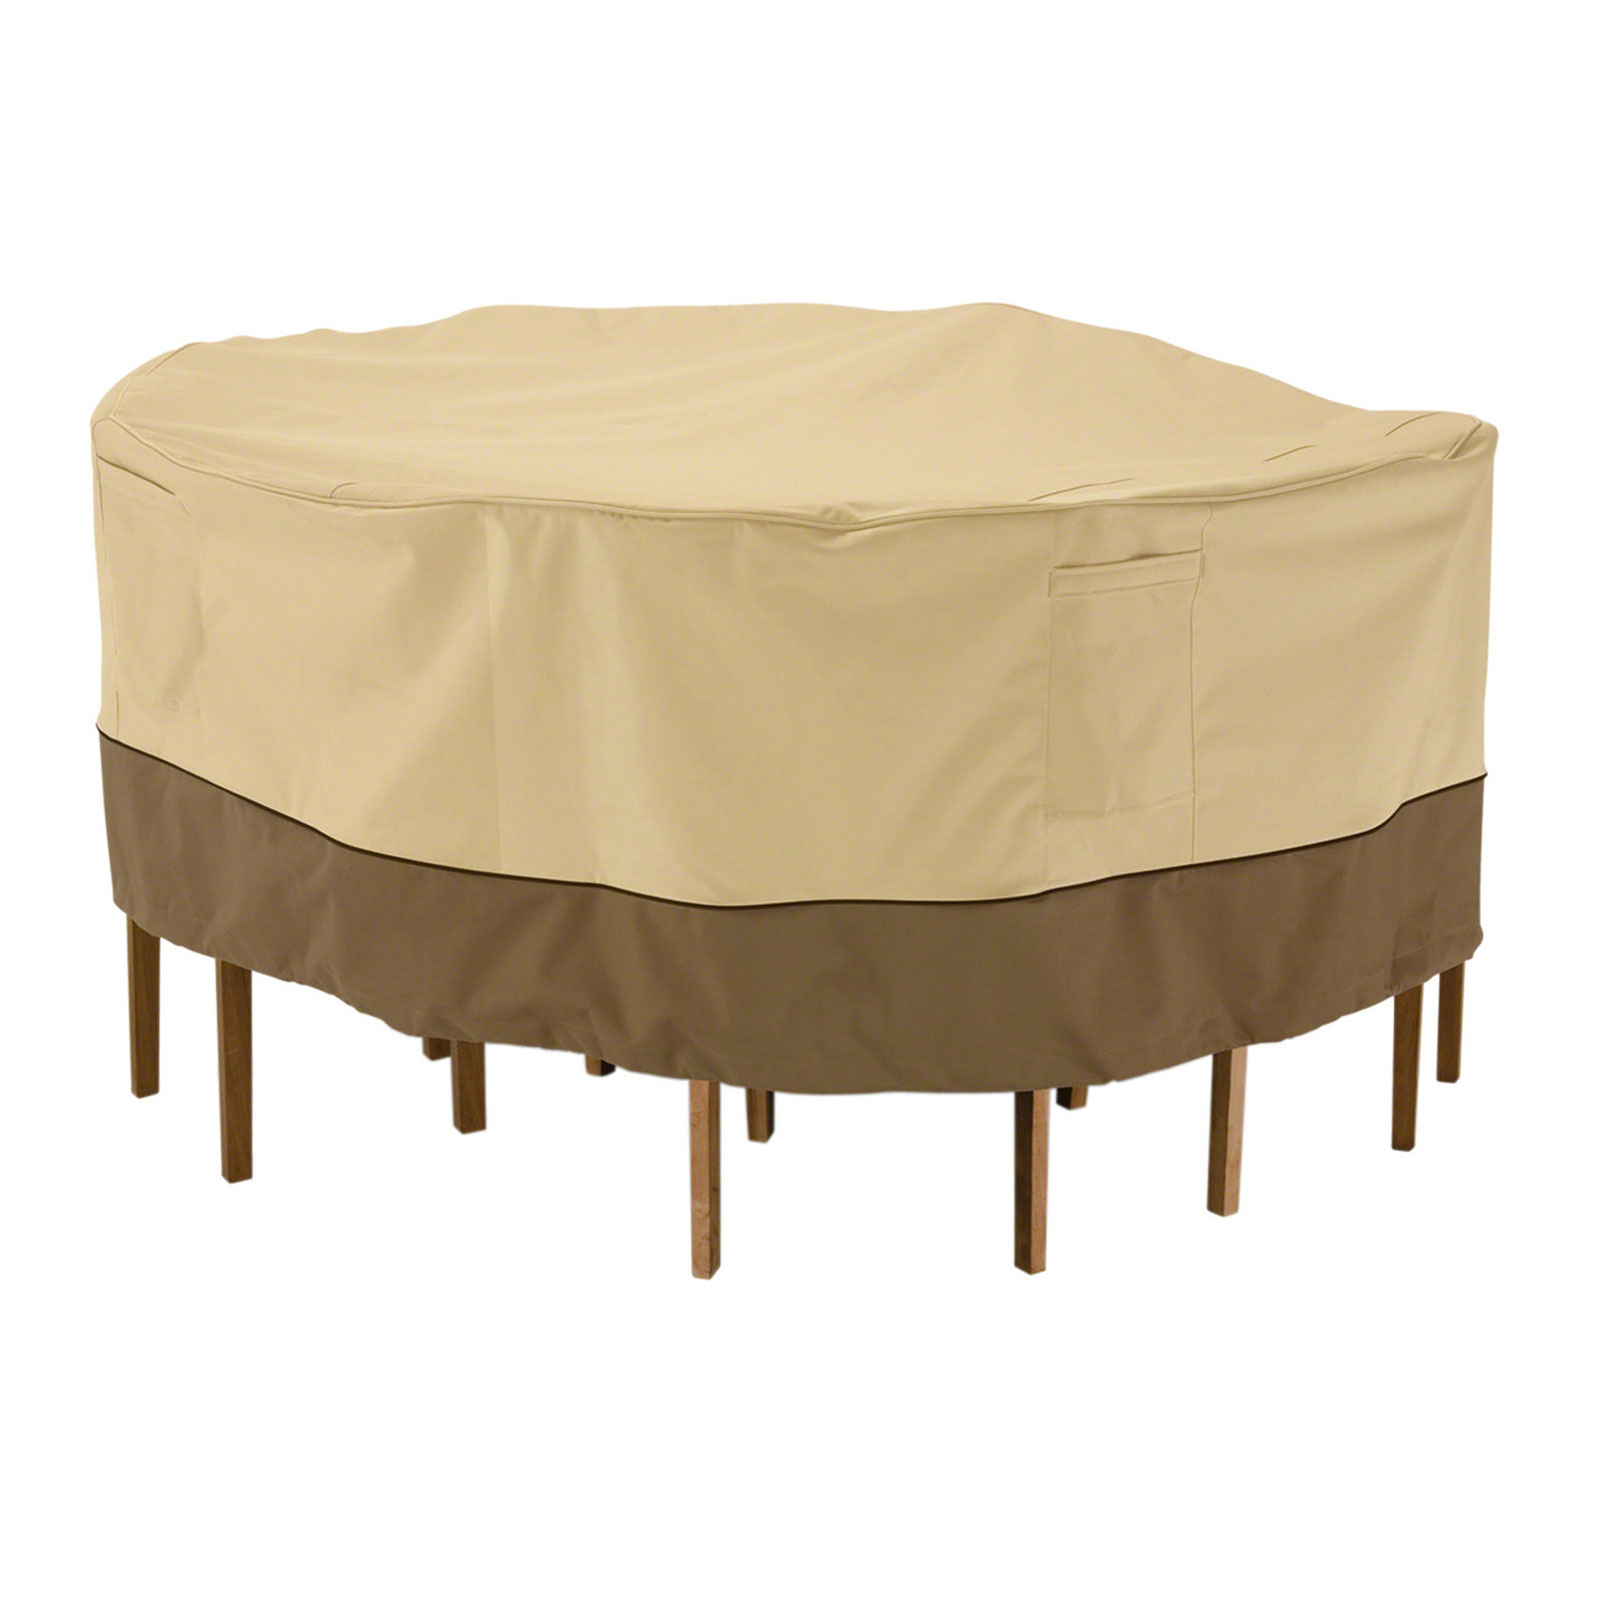 Patio Furniture Table And Chairs Round Patio Table And Chairs Cover In Patio Furniture Covers